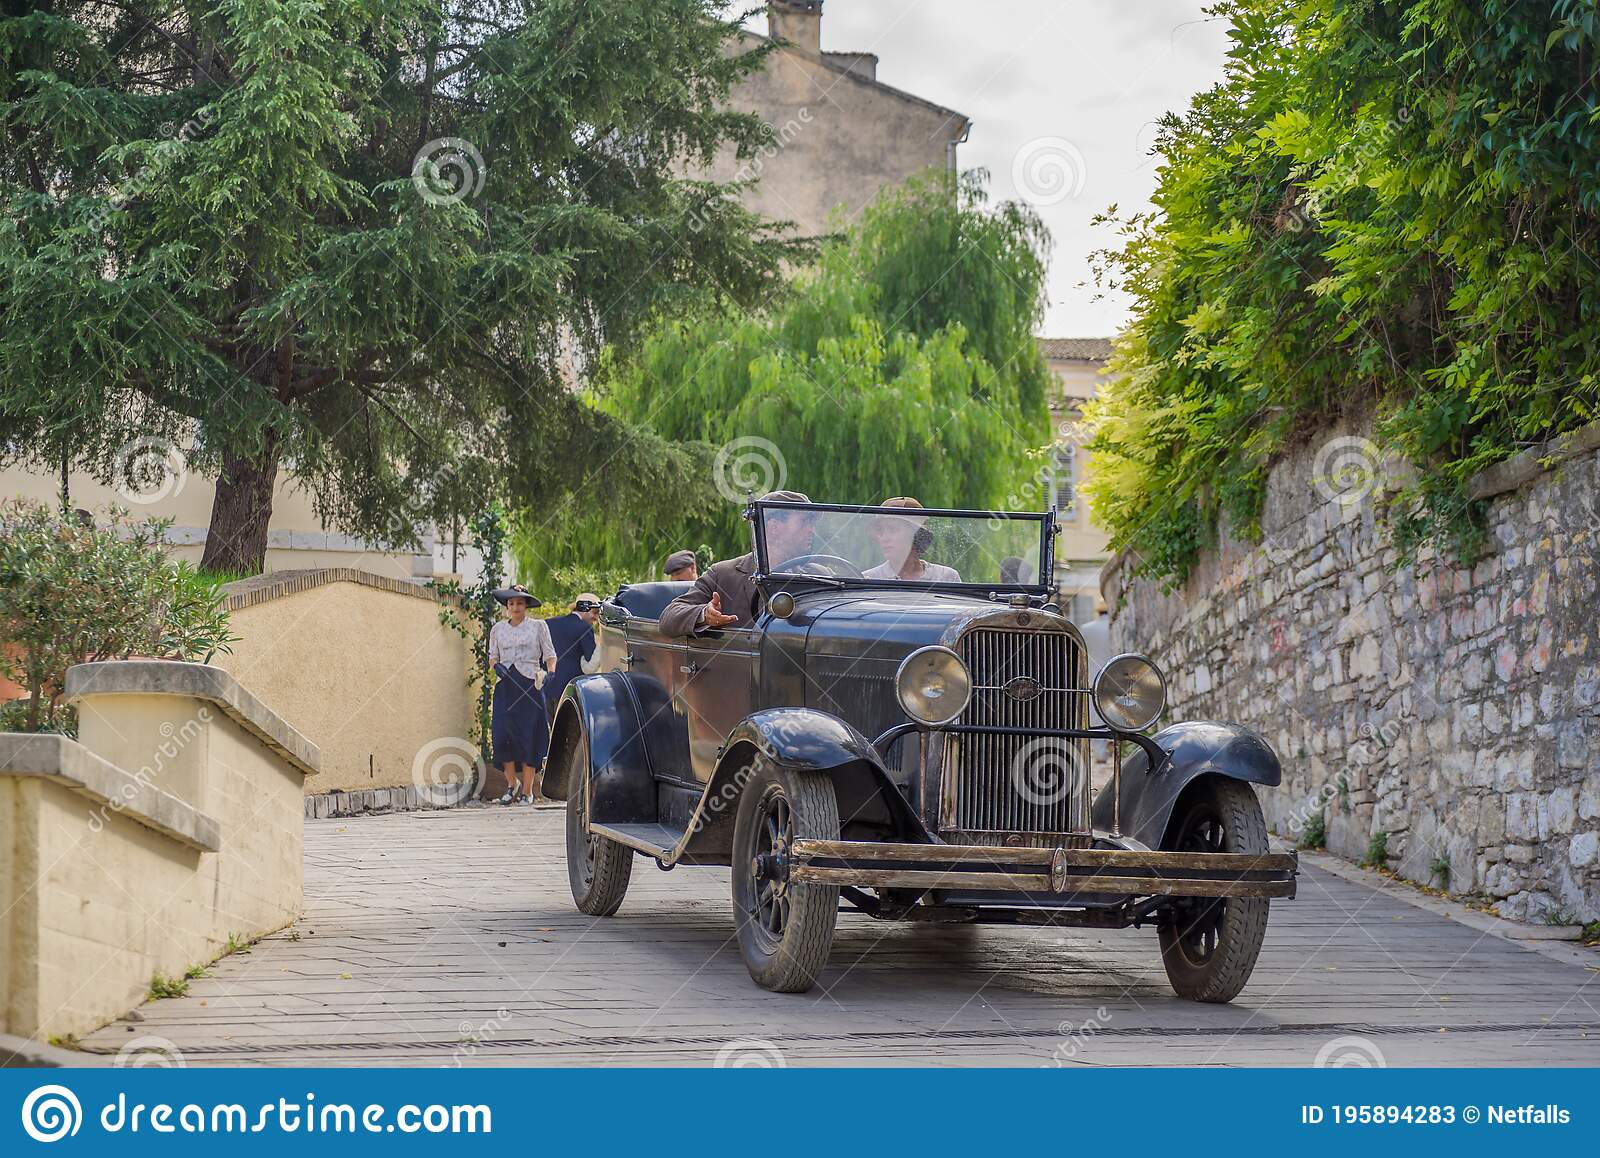 October 20 2015 Filming Of The Durrels Tv Series In Corfu Island Greece Editorial Stock Photo Image Of Street Louisa 195894283 This is alexis georgoulis / the durrells in corfu reel by grit artists on vimeo, the home for high quality videos and the people who love them. dreamstime com